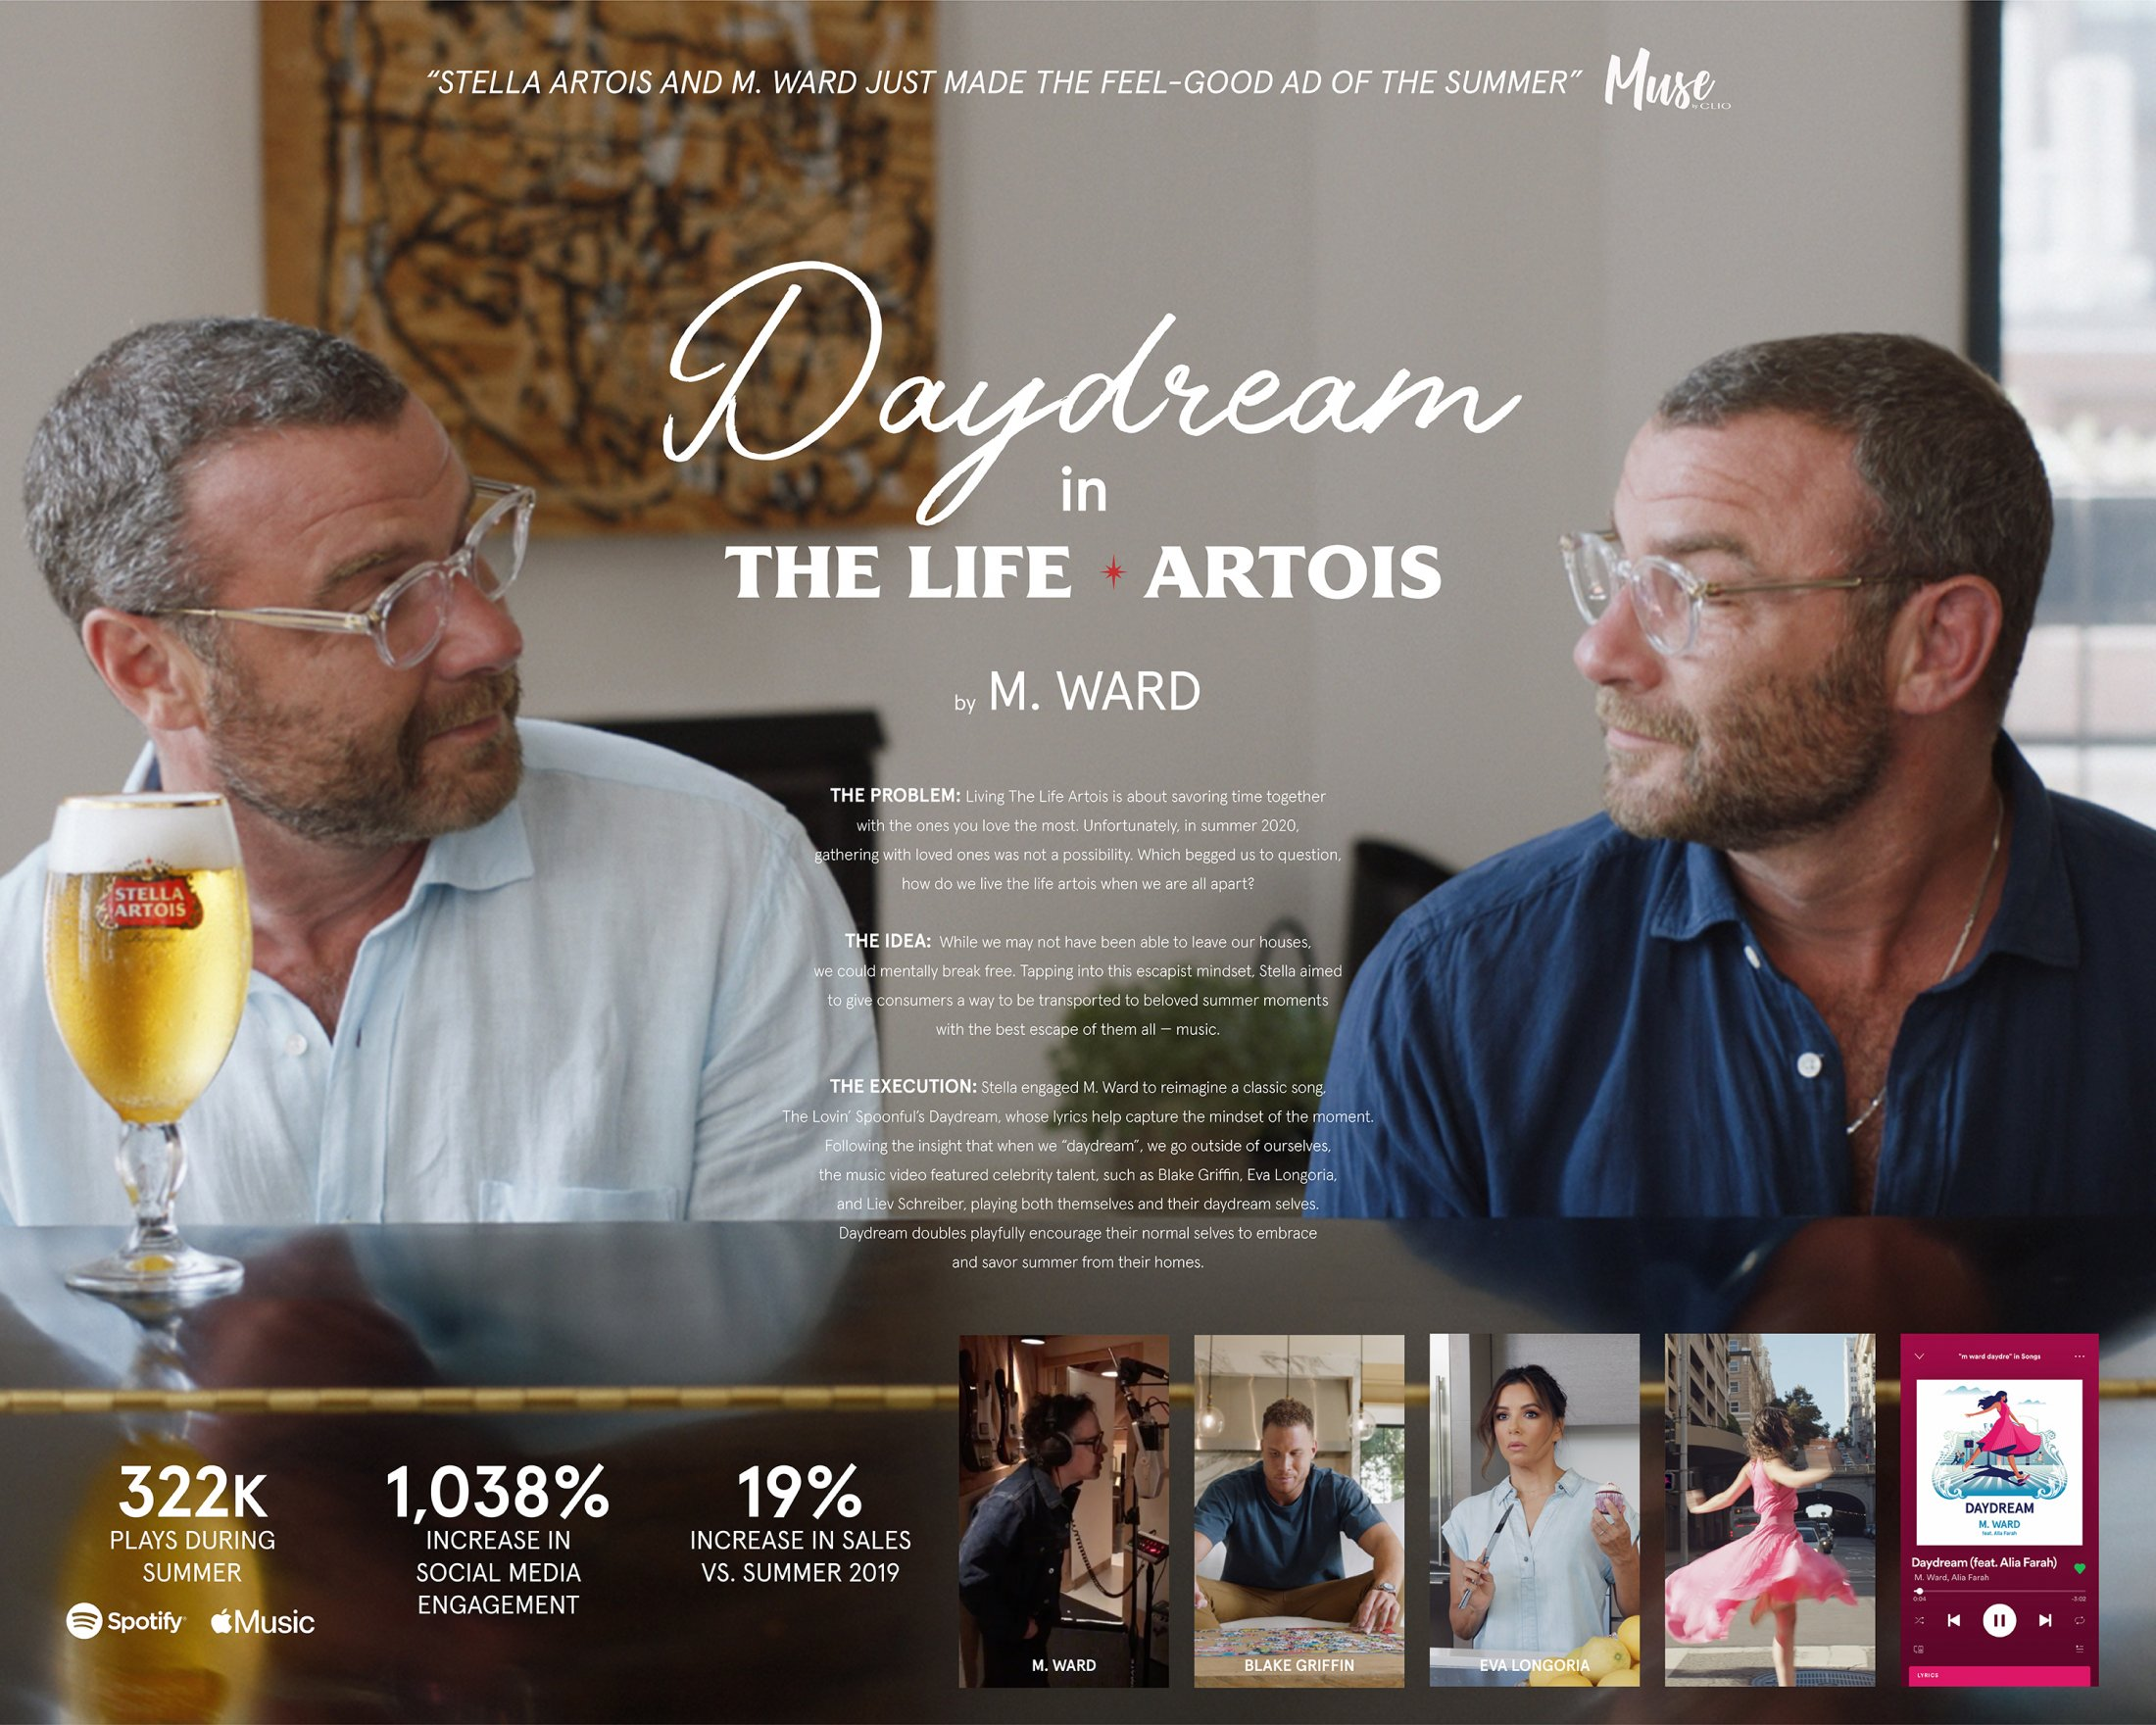 Thumbnail for Daydreaming (In the Life Artois)